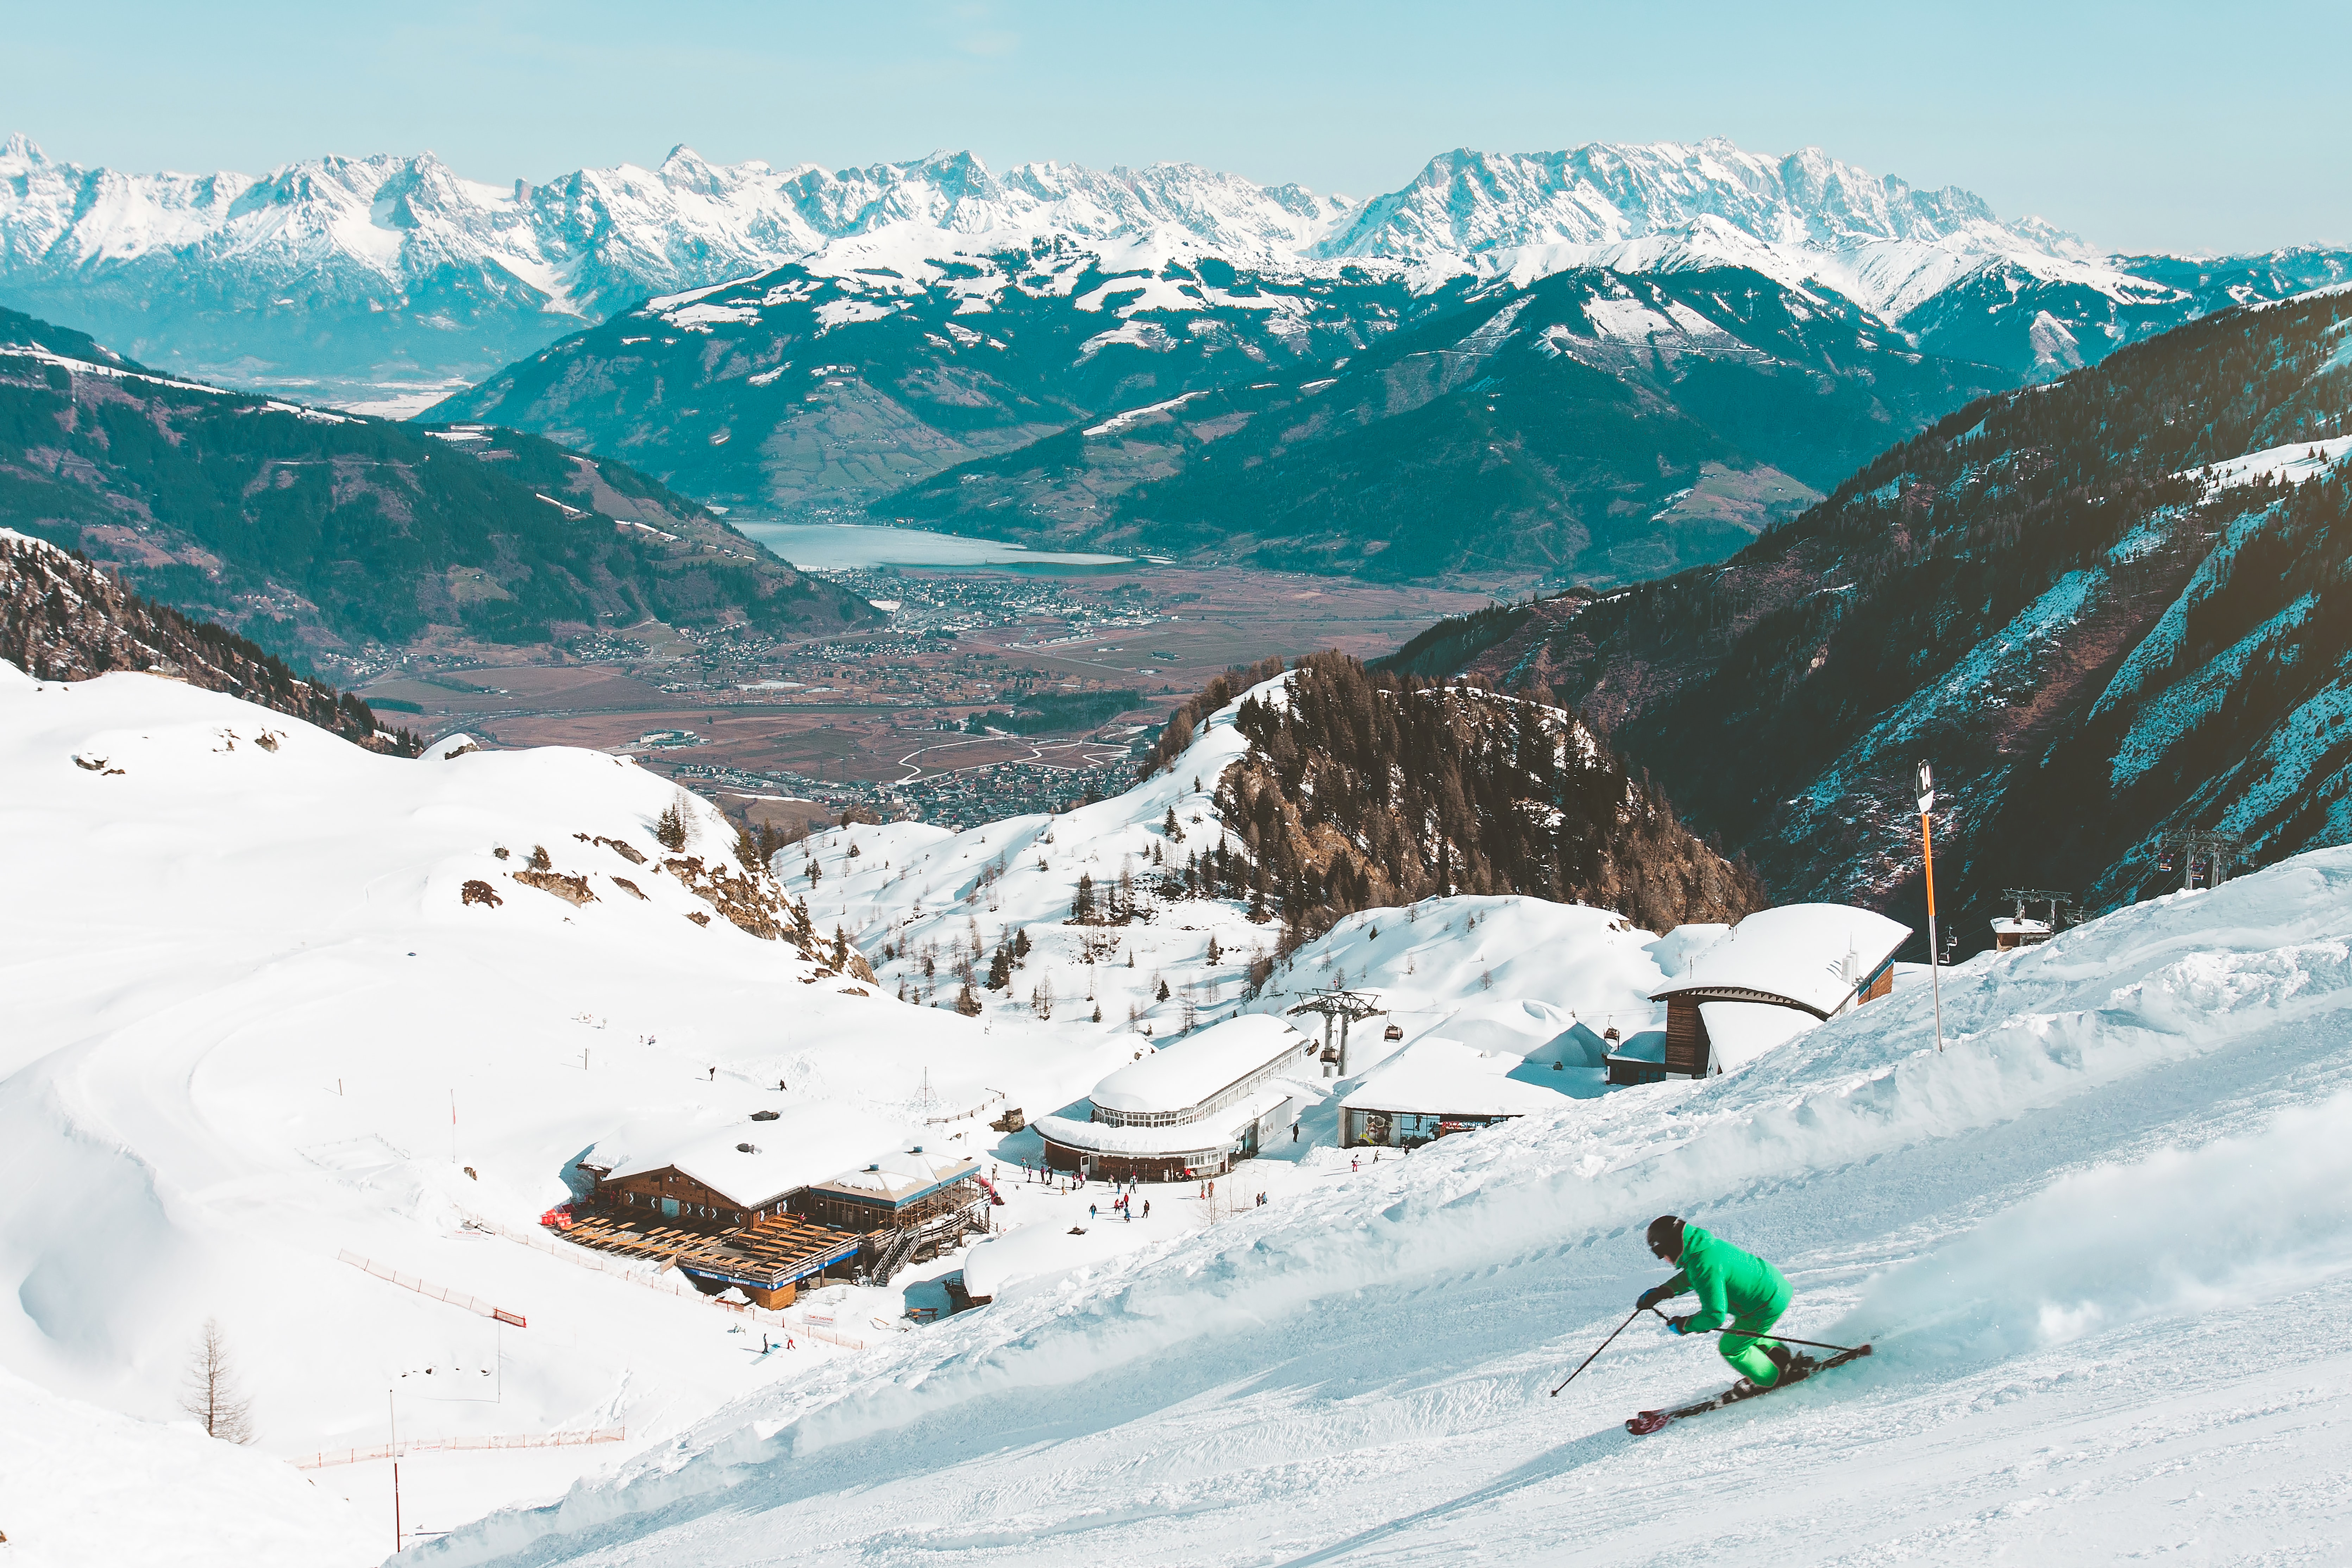 person riding on skis during winter surrounded by mountains